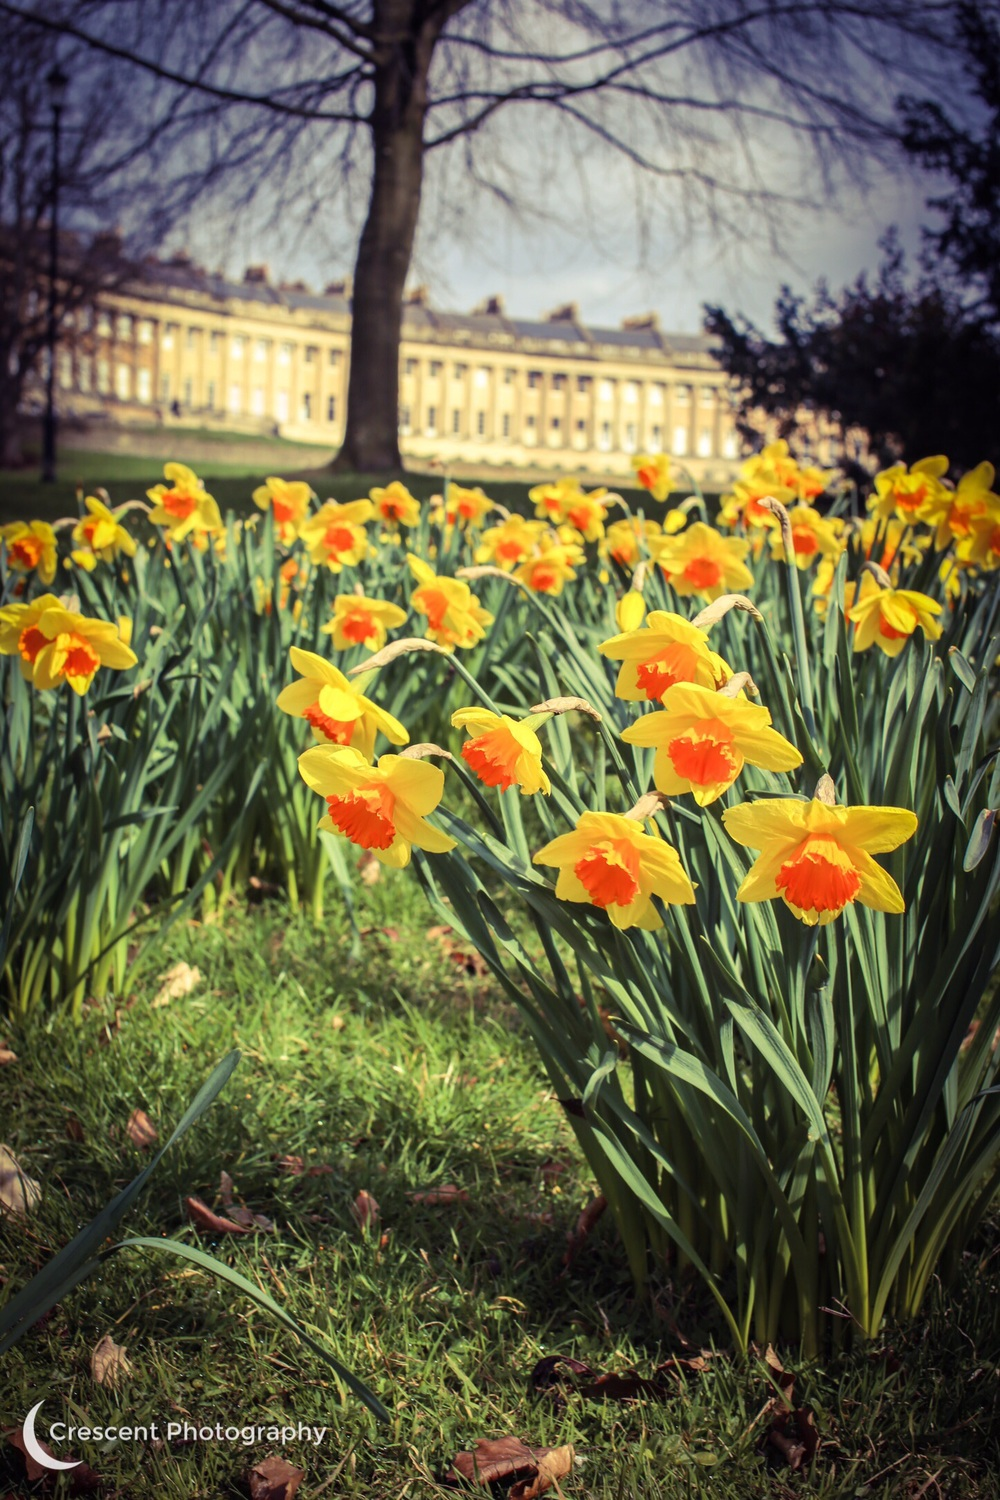 The Royal Crescent, daffodils